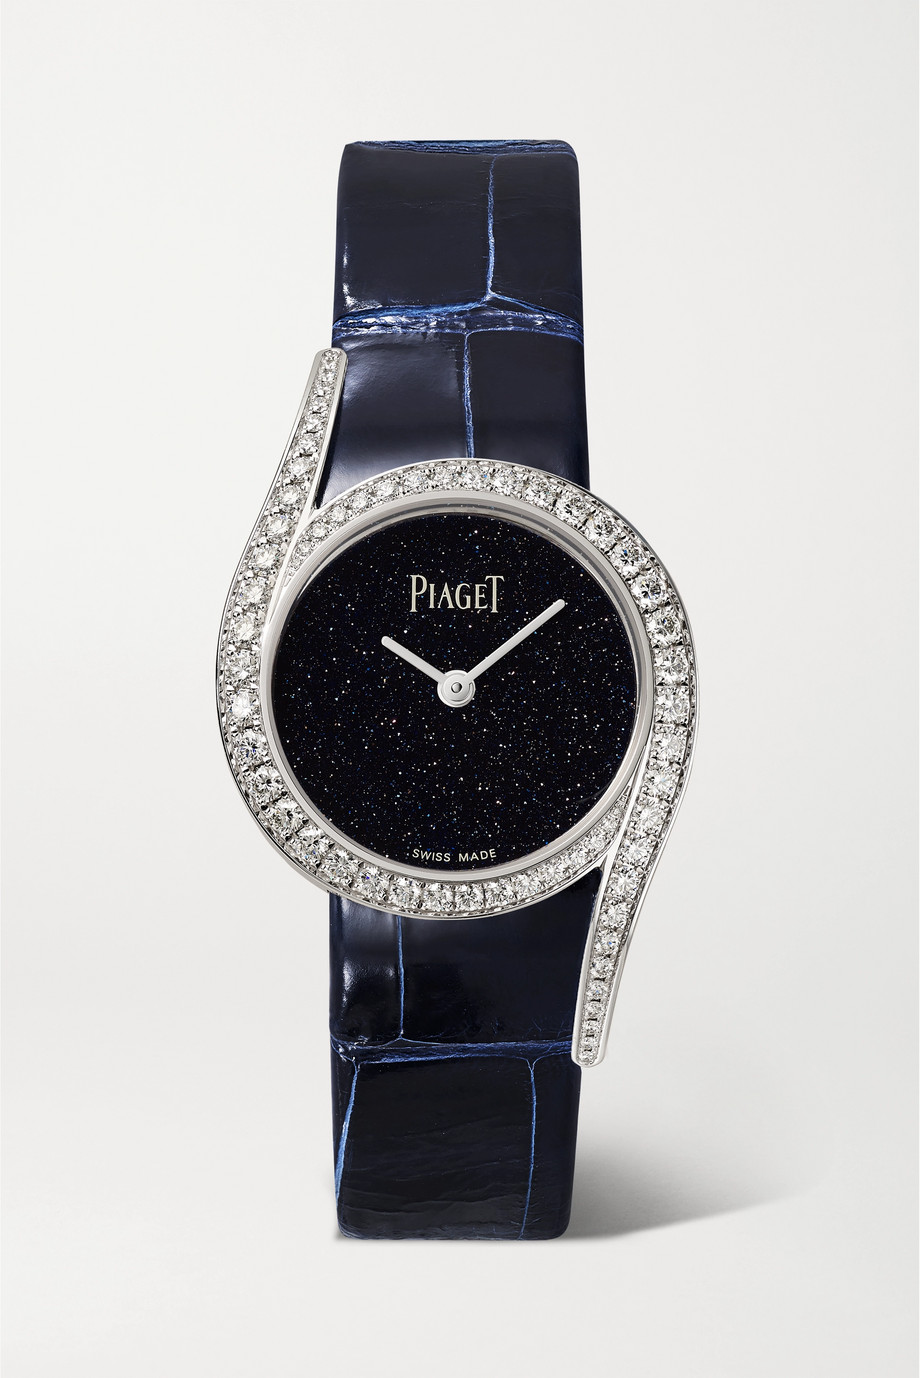 Piaget Montre en or blanc 18 carats et diamants à bracelet en alligator Limelight Gala 32 mm - Édition limitée